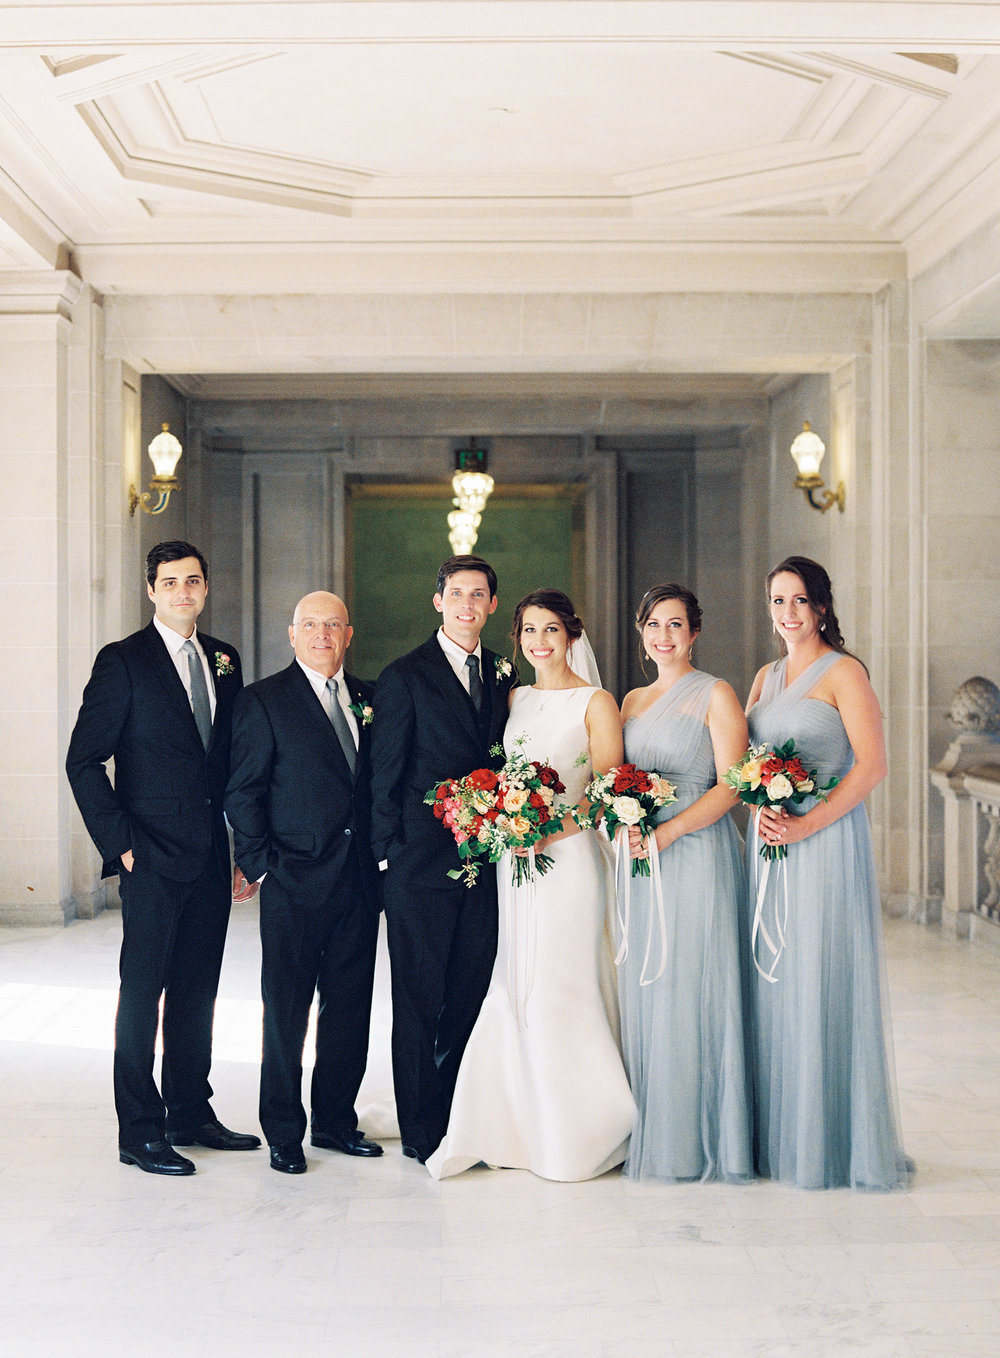 Meghan Mehan Photography - California Wedding Photographer | San Francisco City Hall Wedding 067.jpg